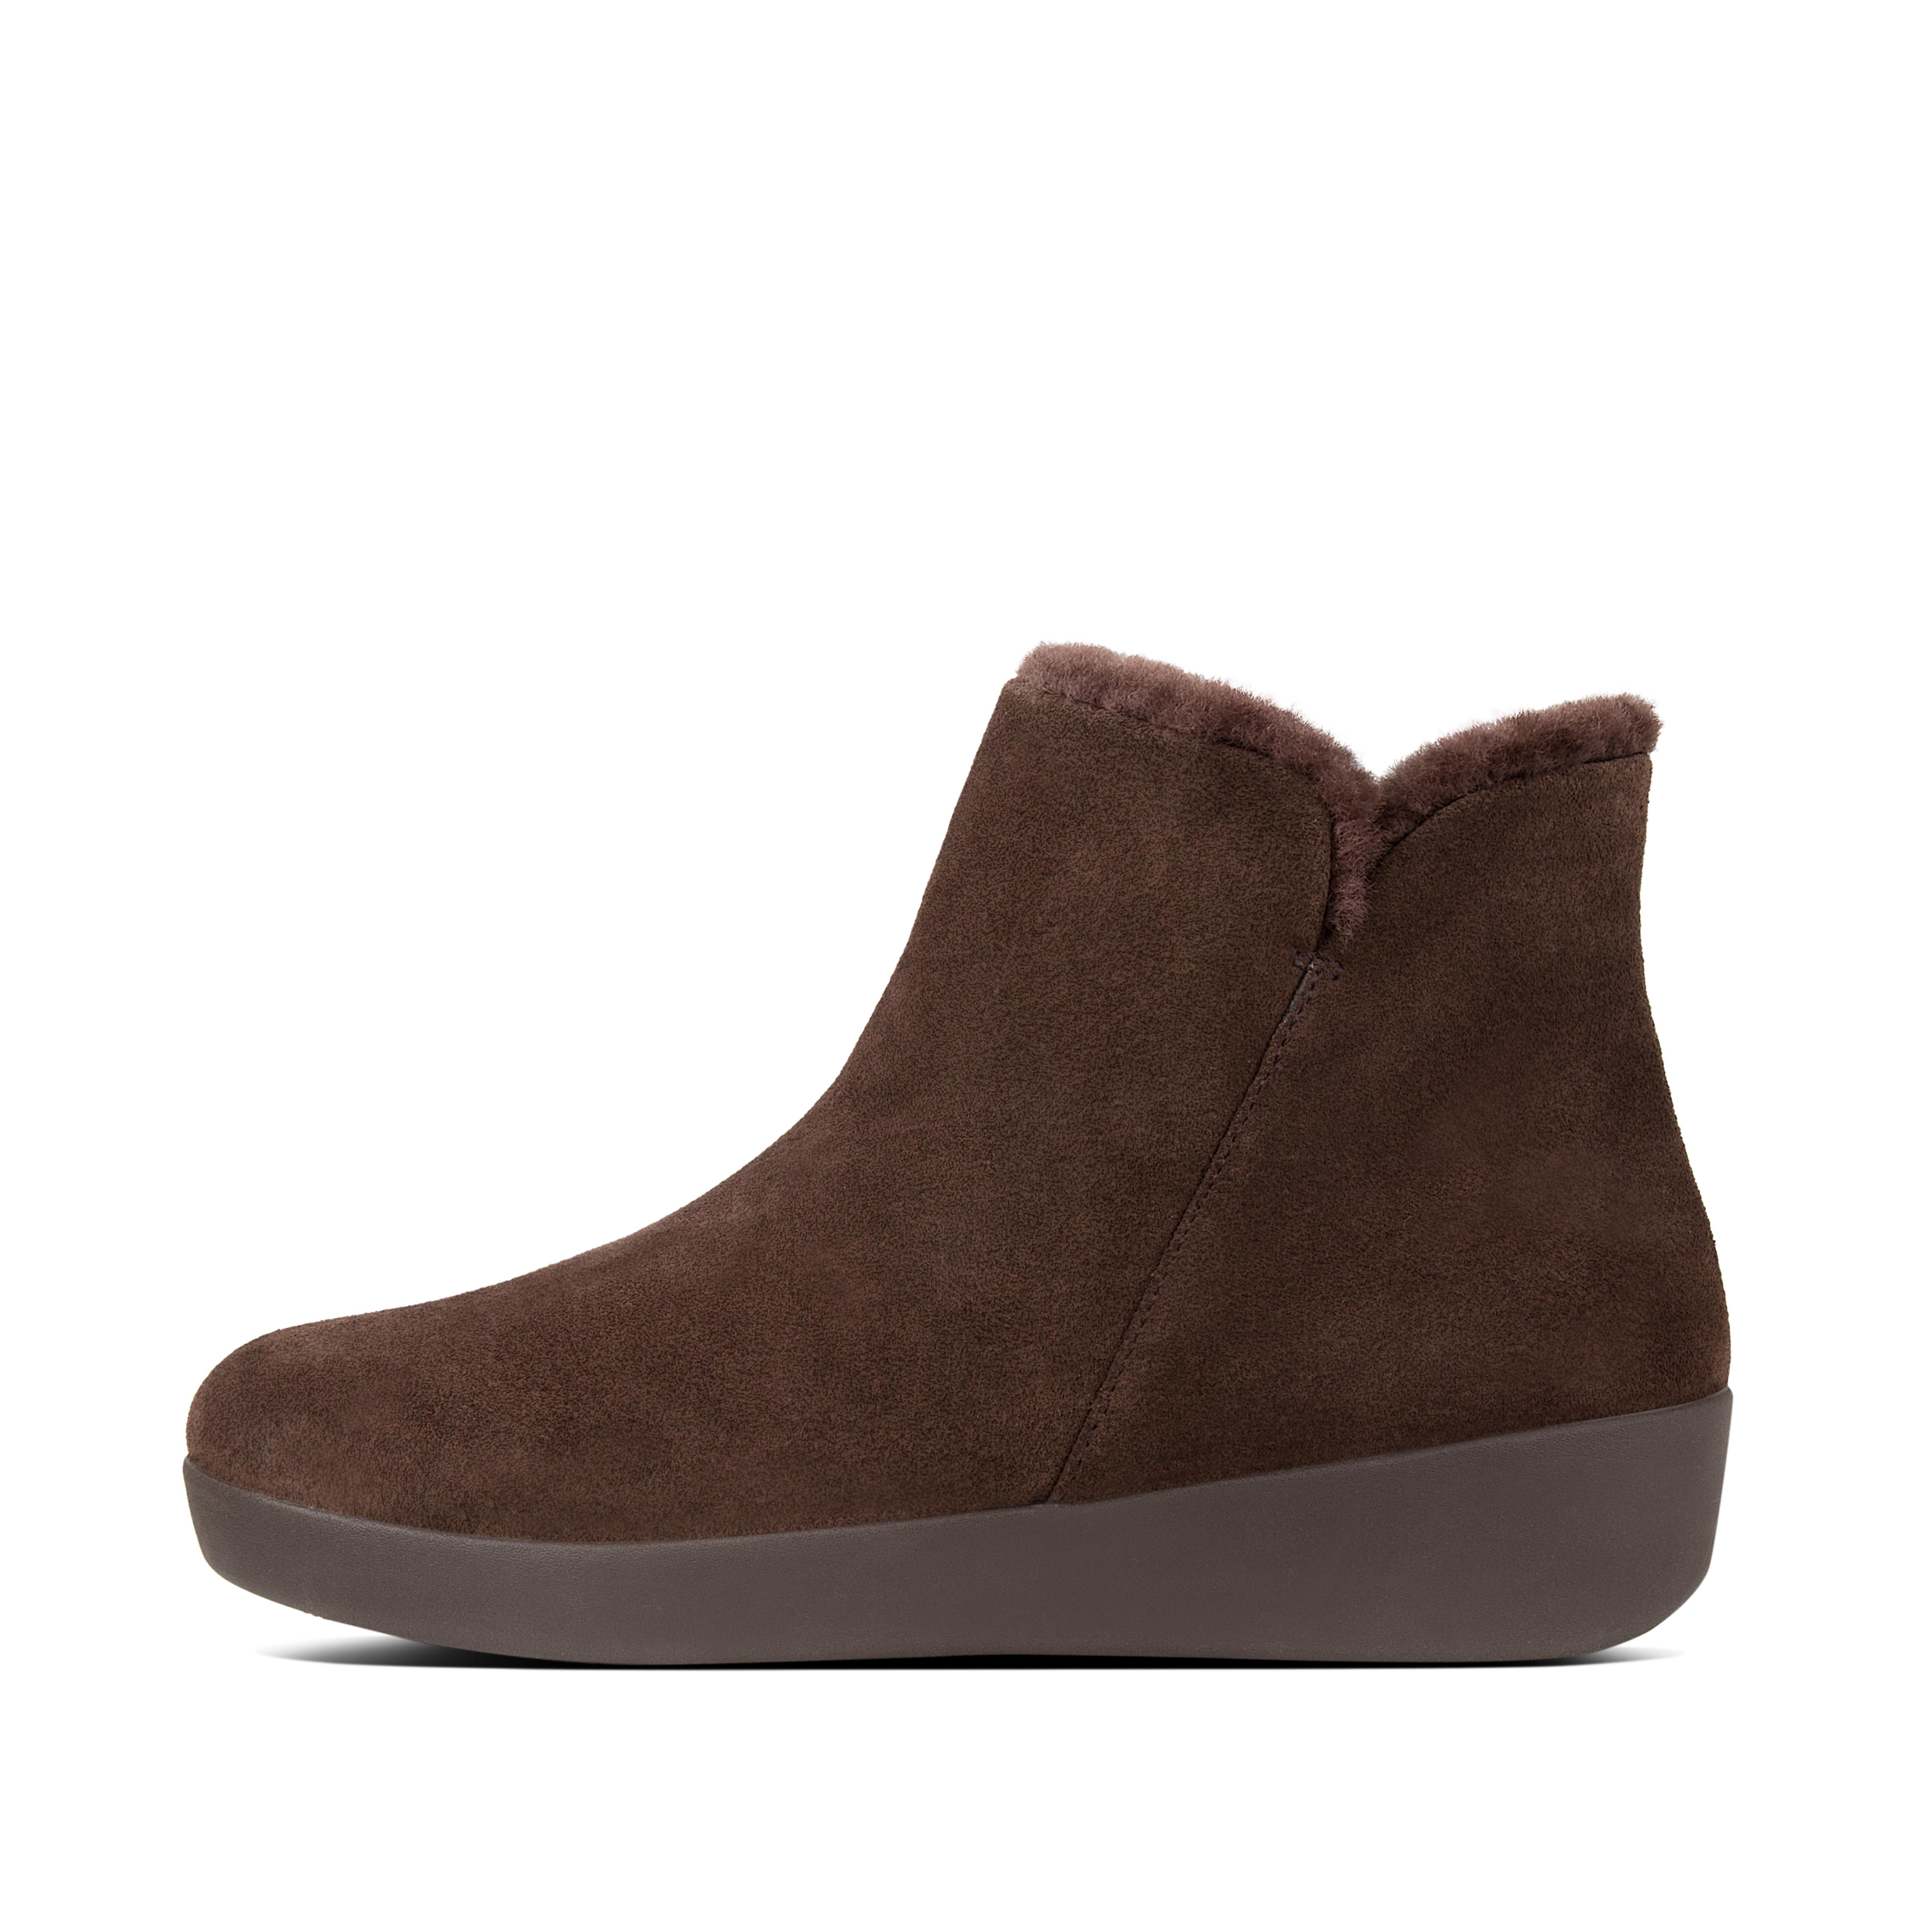 Proof that superchic can be really cosy. These sleek little zip-up ankle boots, here in suede, are lined in soft, fluffy, toasty shearling, with our Supercom FF midsoles underneath, for amazing all-day comfort and cushioning. They're versatile too - try them with a shift dress, skinny jeans or a trouser suit.